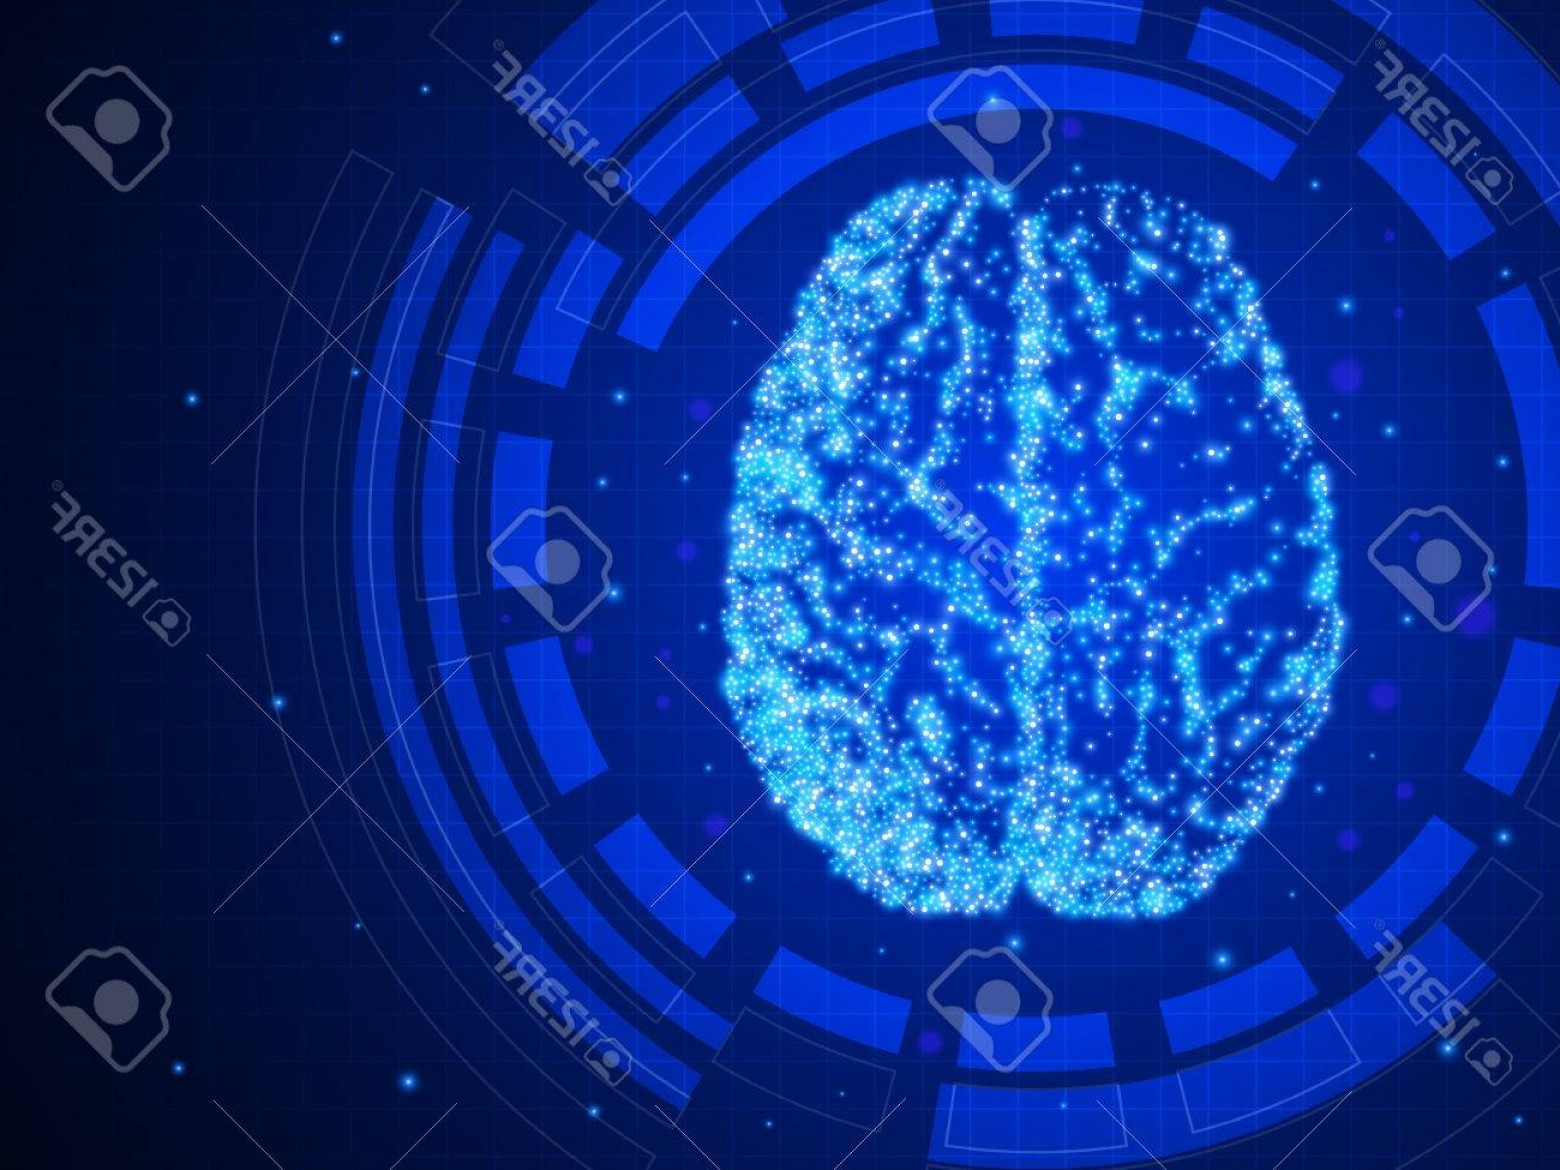 Blue Technology Vector Illustration: Photostock Vector Artificial Intelligence Blue Technology Background Abstract Human Brain Vector Illustration Eps